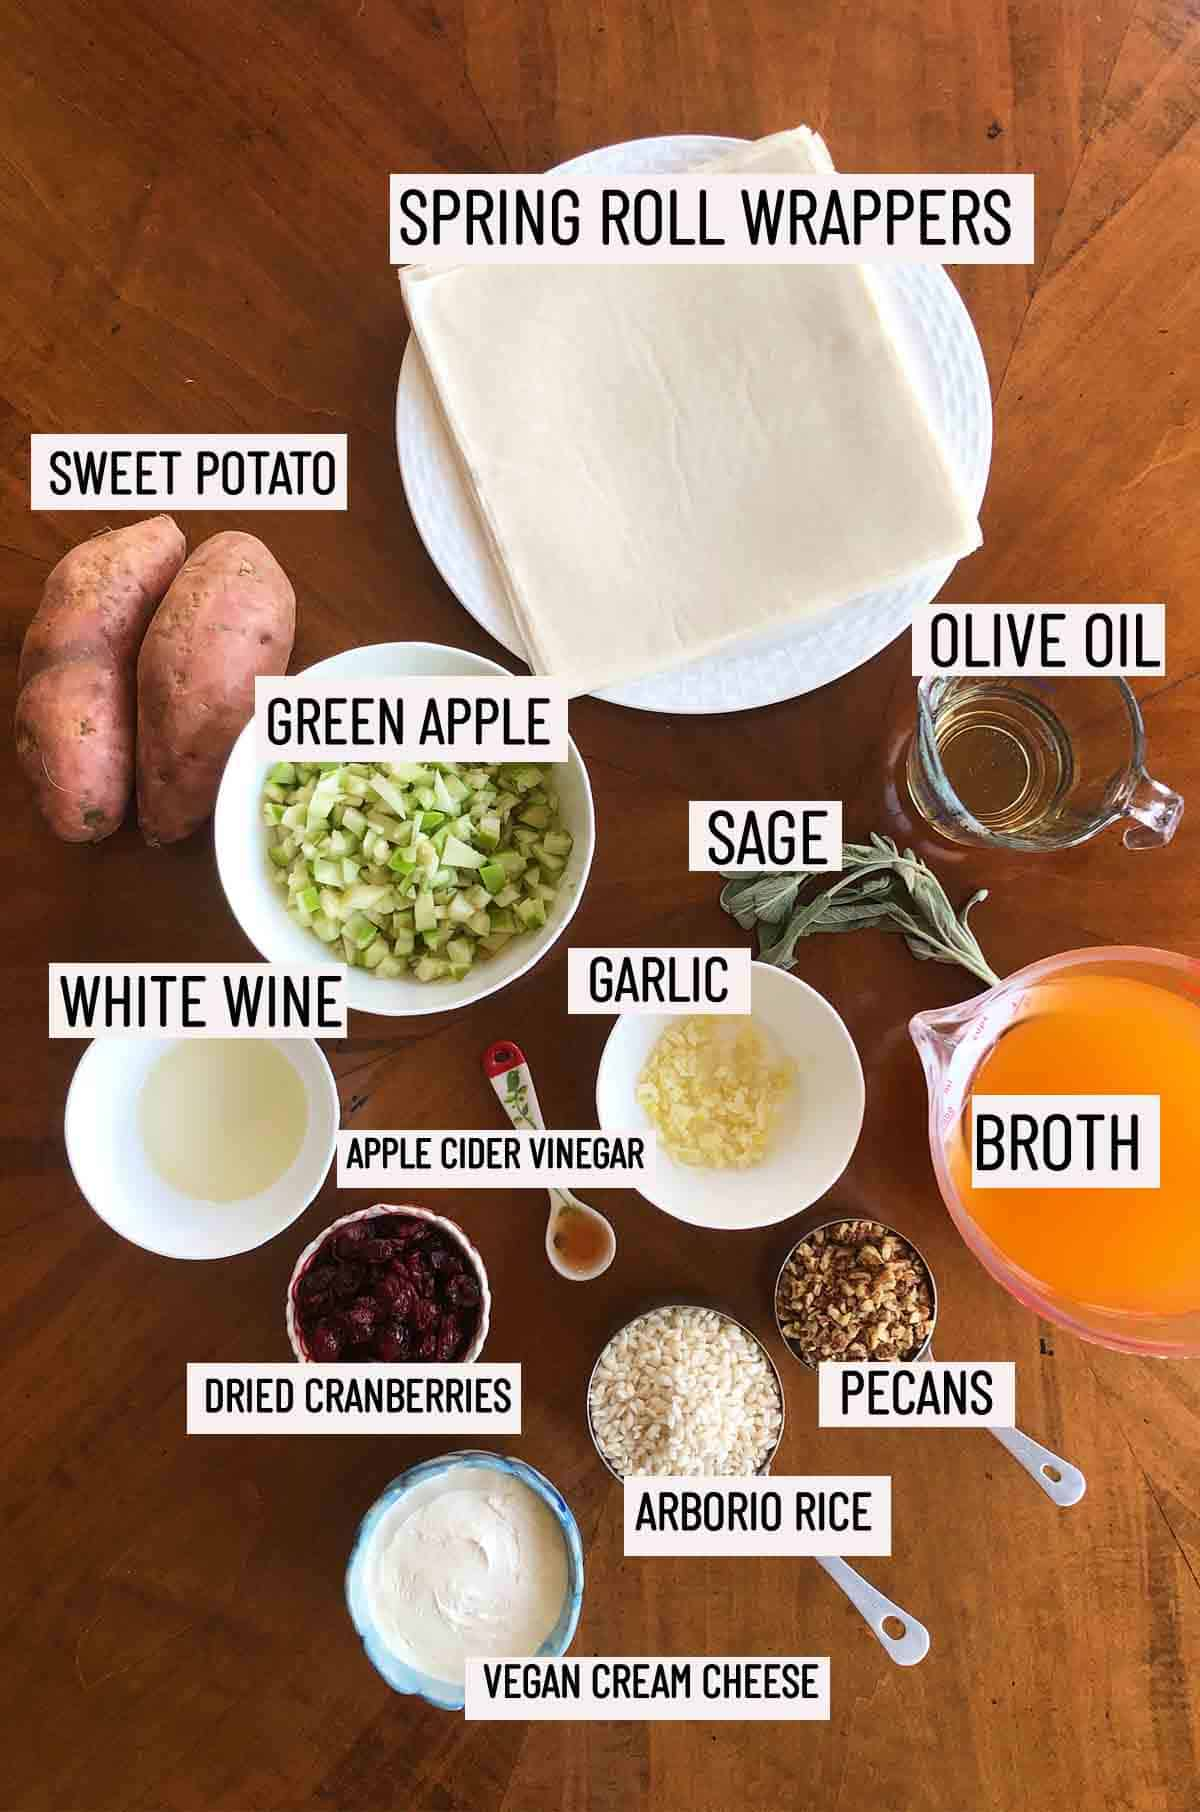 Birds eye view of portioned ingredients needed to make baked spring rolls including cream cheese, arborio rice, pecans, both, dried cranberries, apple cider vinegar, garlic, sage, olive oil, white wine, green apple, sweet potato, and spring roll wrappers.